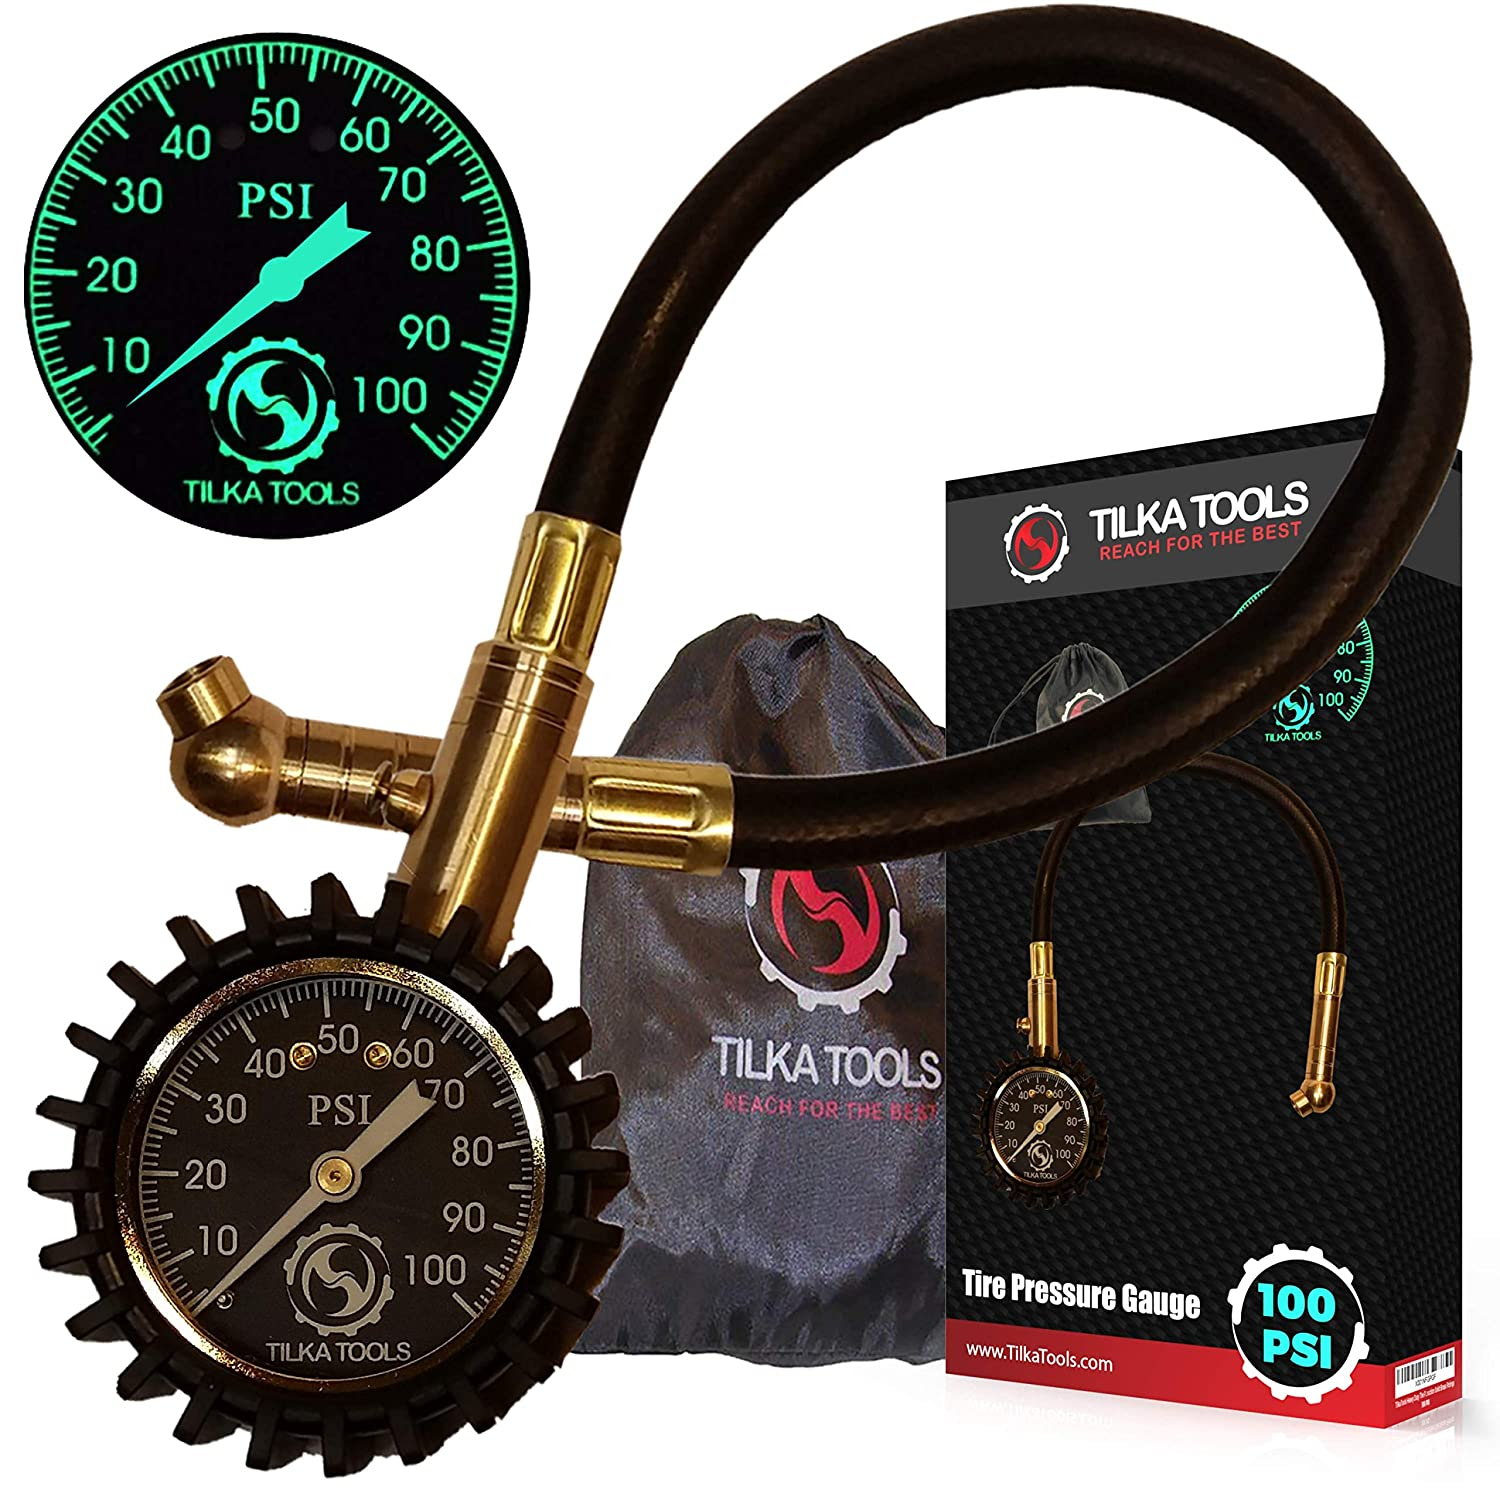 Tilka Tools Tire Pressure Gauge for Motorcycle Truck Car Bike (0-60) (0-75) (0-100 PSI) ANSI B40.1 Analog Dial Heavy Duty High Air Tester Best Gift Professional Commercial Rated SUV ATV TTTPG0075